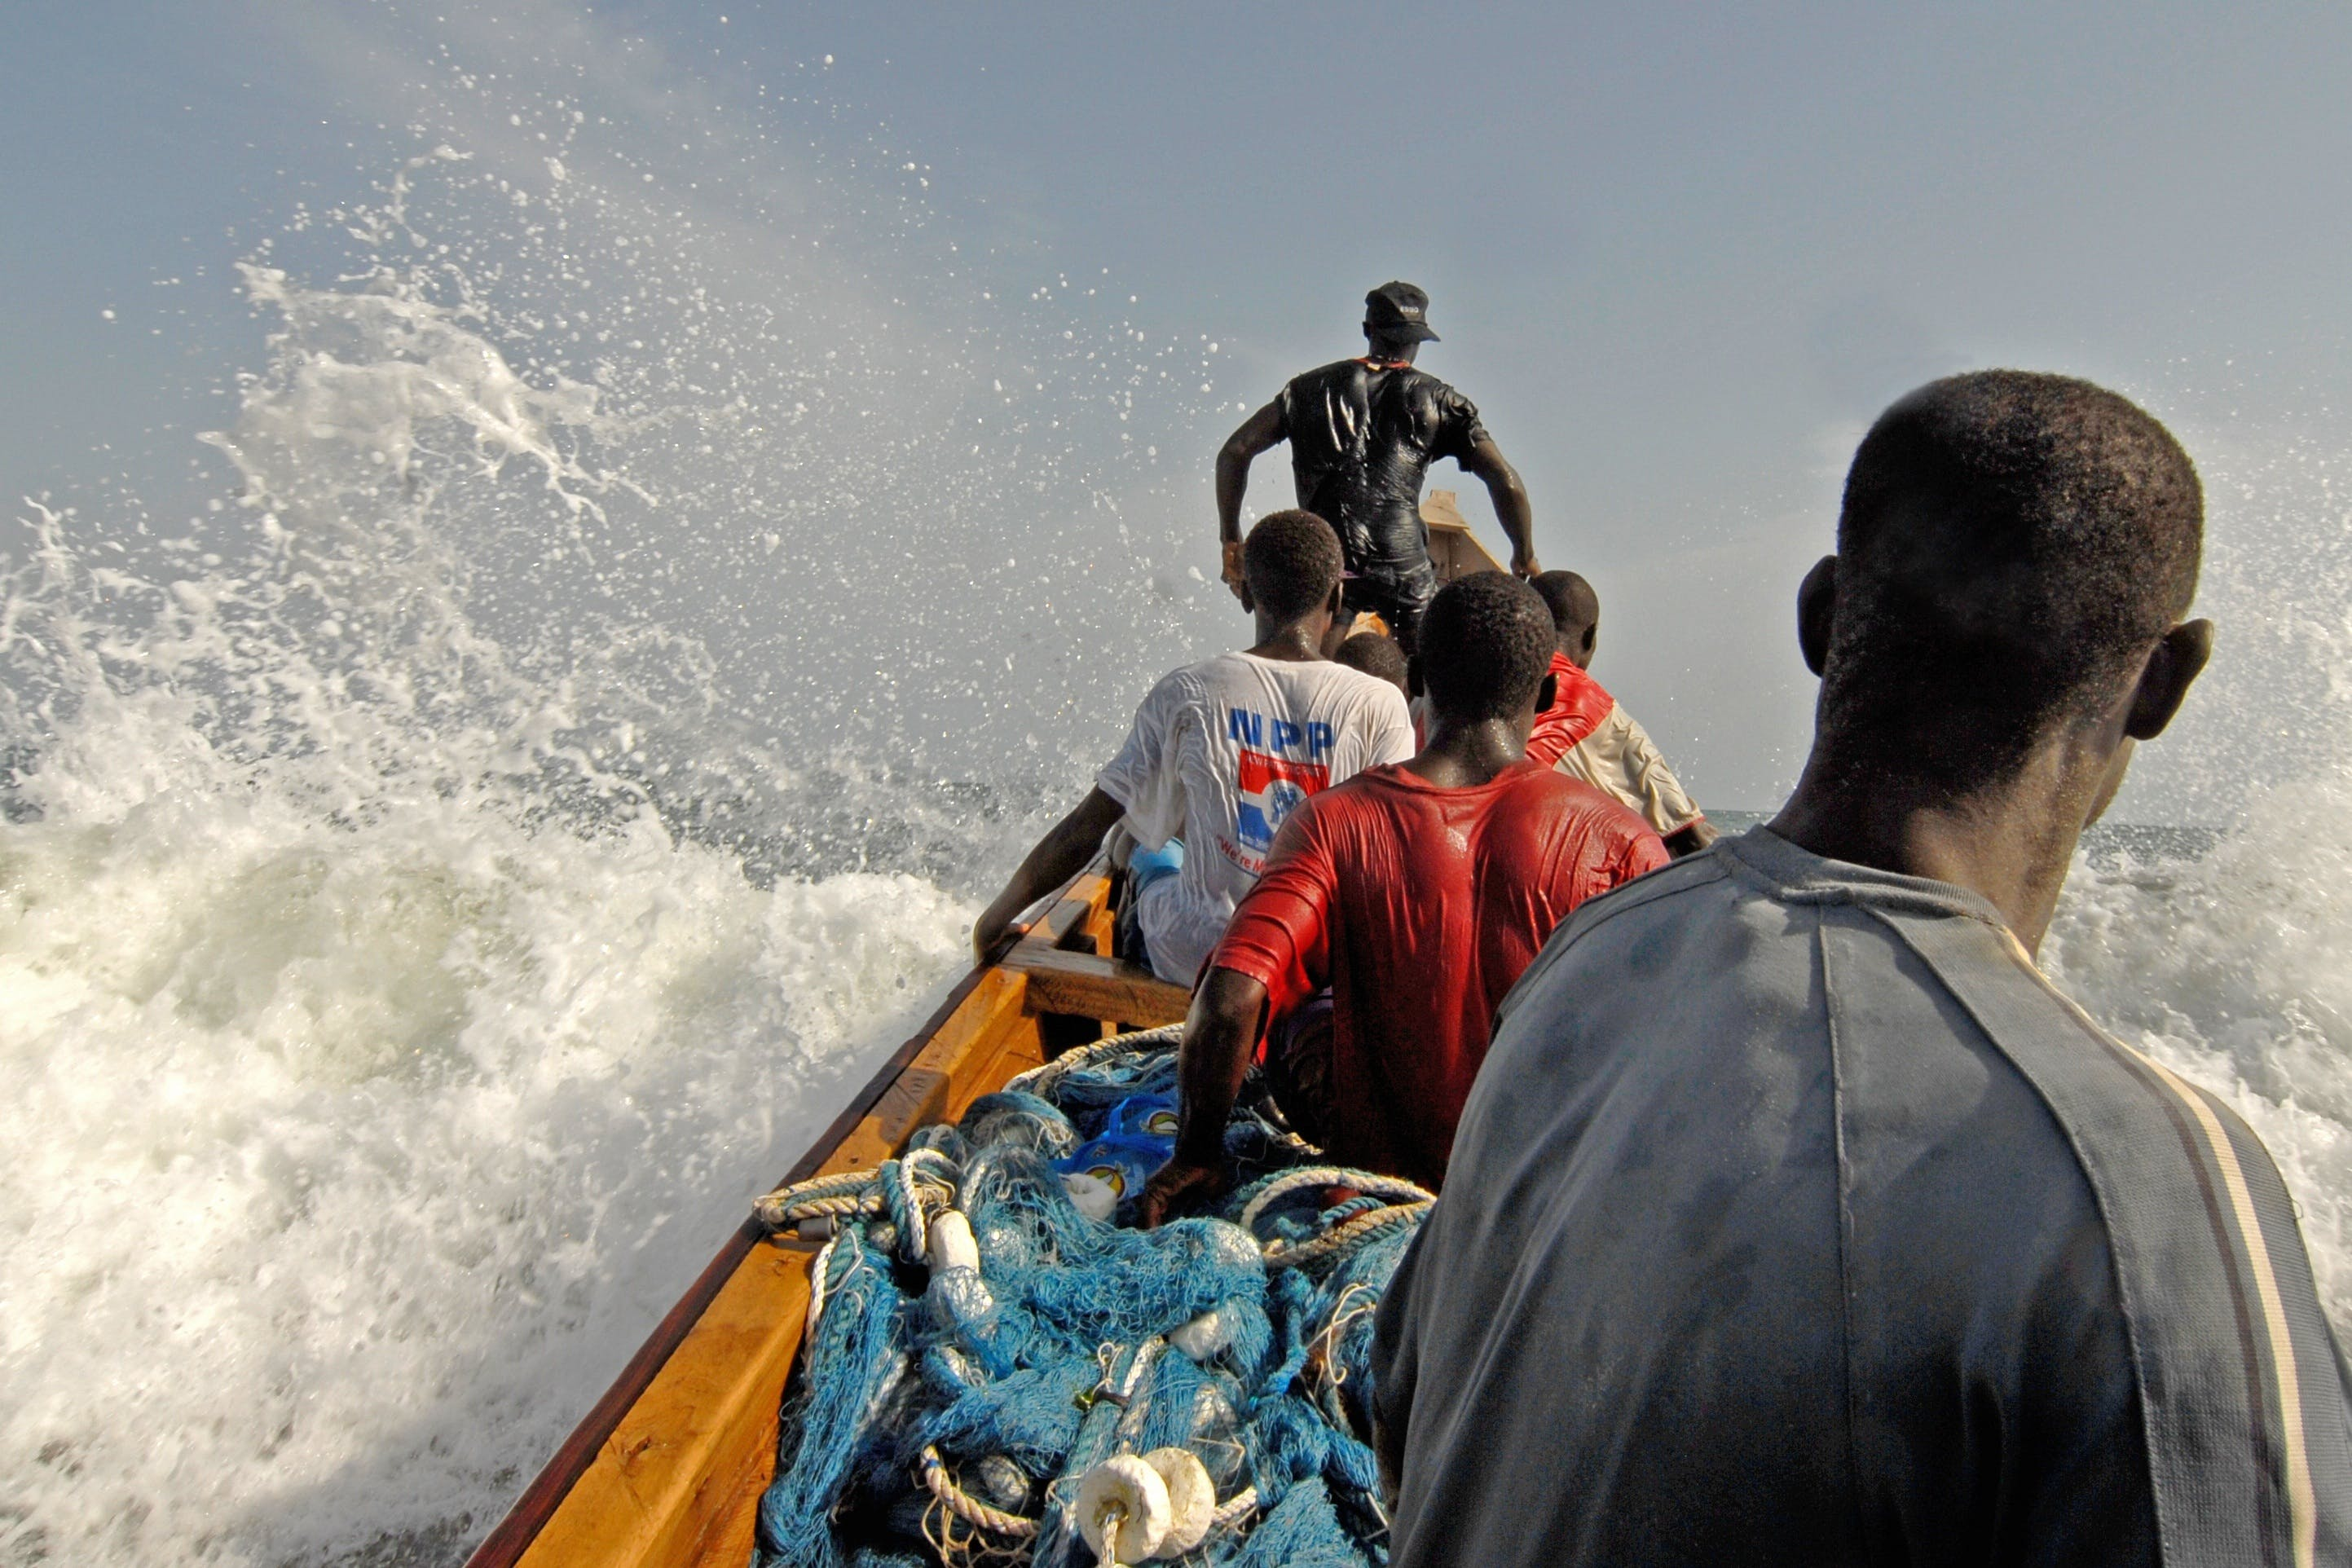 Five Men Riding on Boat